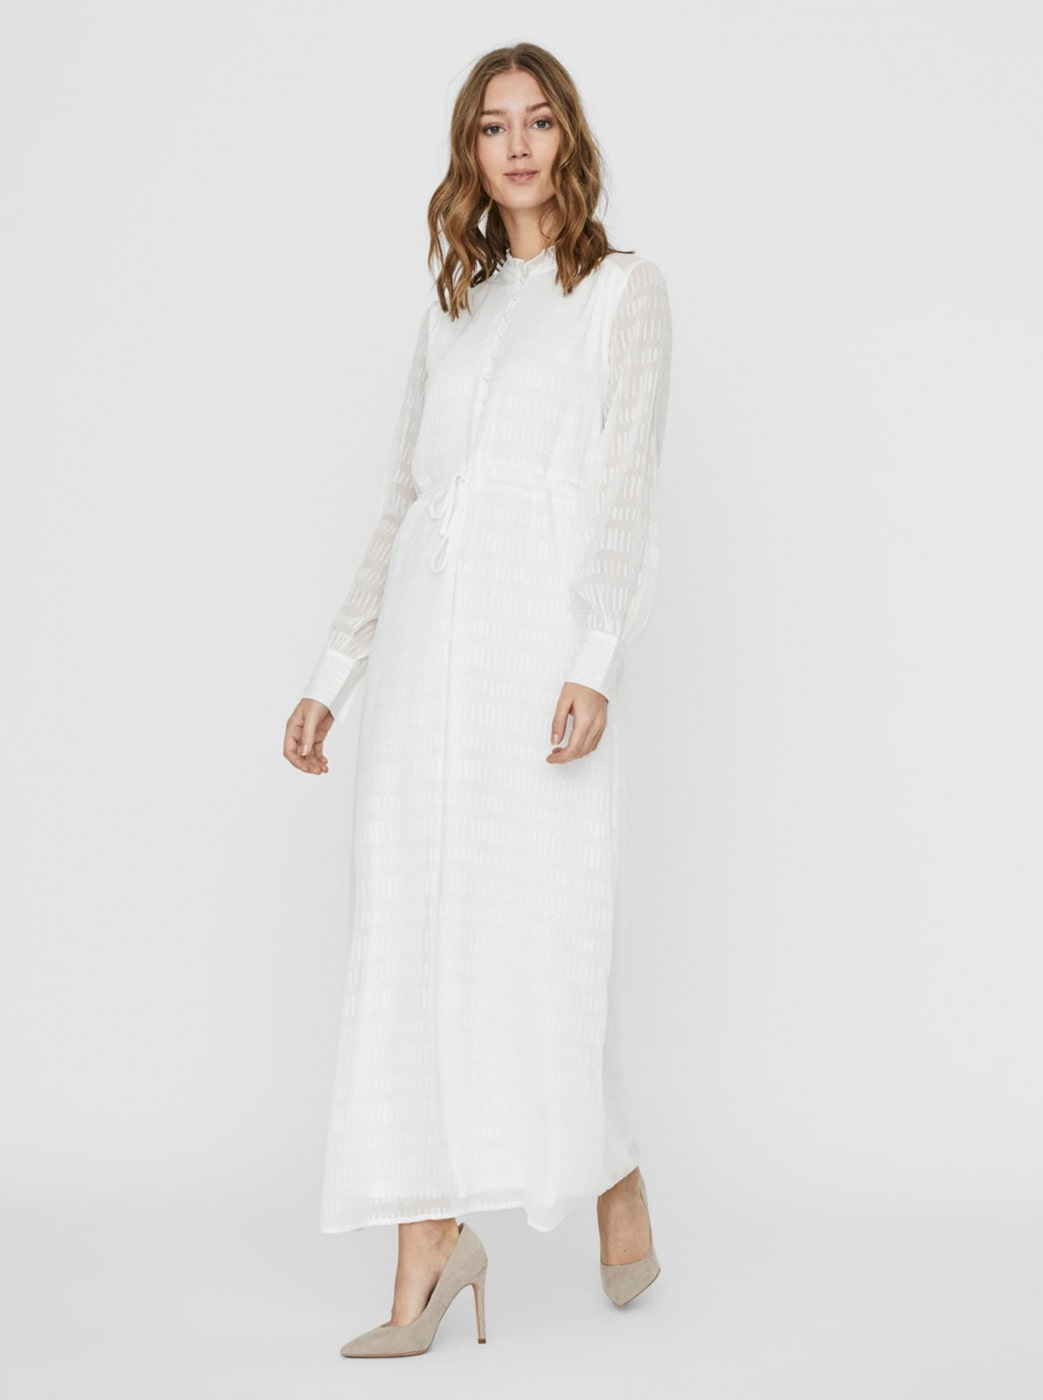 Vero MODA Live White Patterned Maxi dress